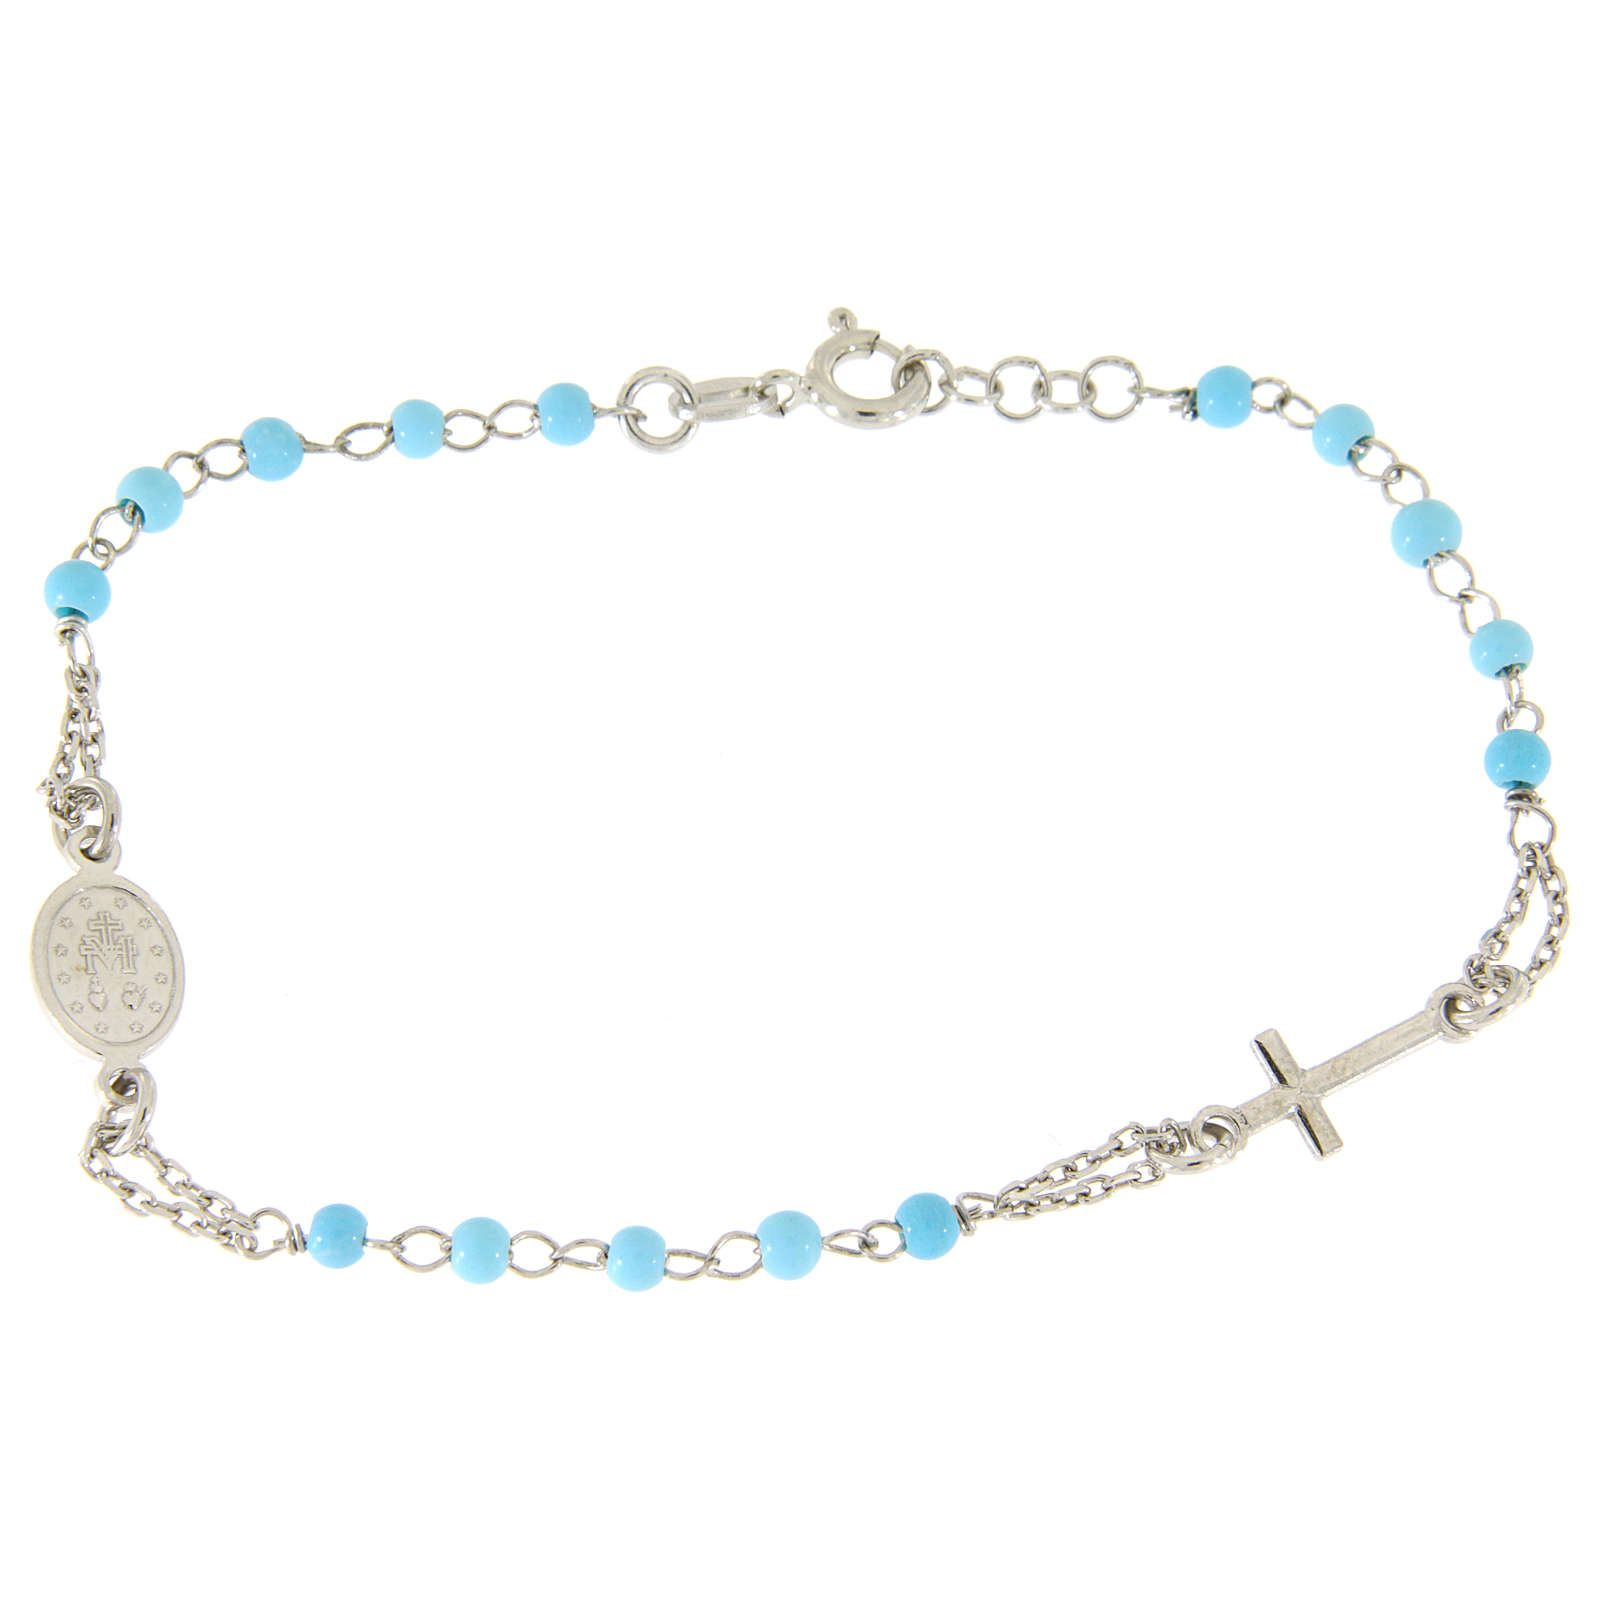 Rosary bracelet in 925 sterling silver with light blue spheres sized 4 mm 4